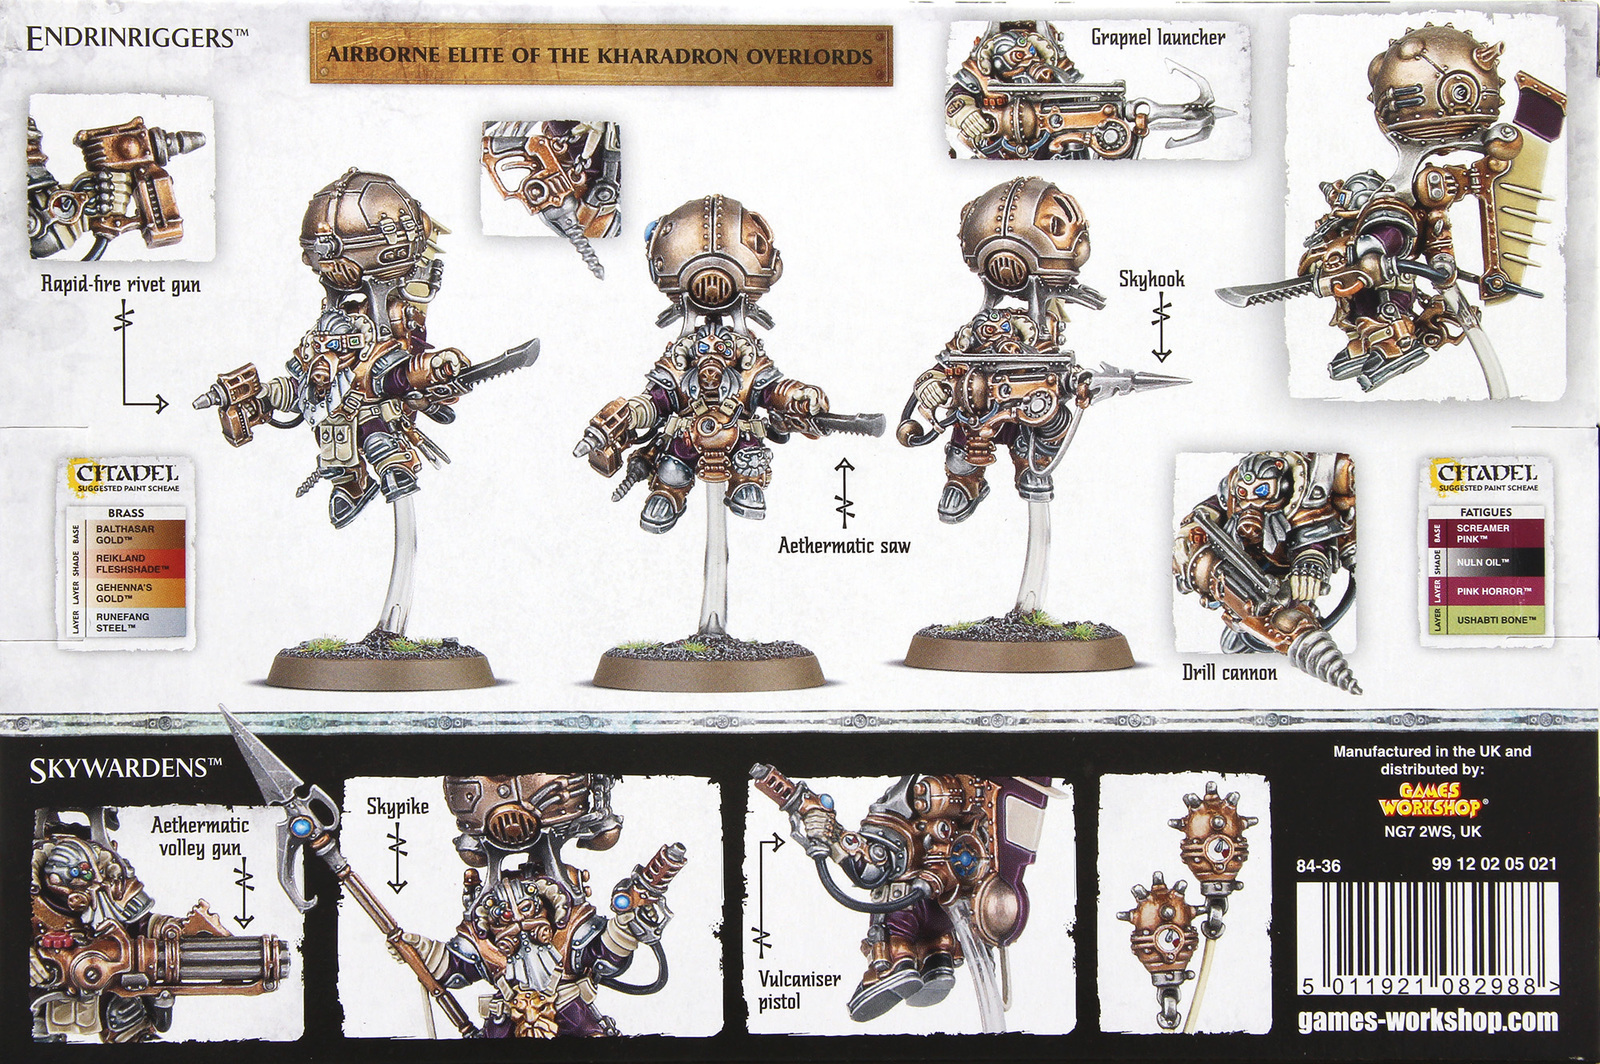 Warhammer Age of Sigmar Kharadron Overlords: Skyriggers image